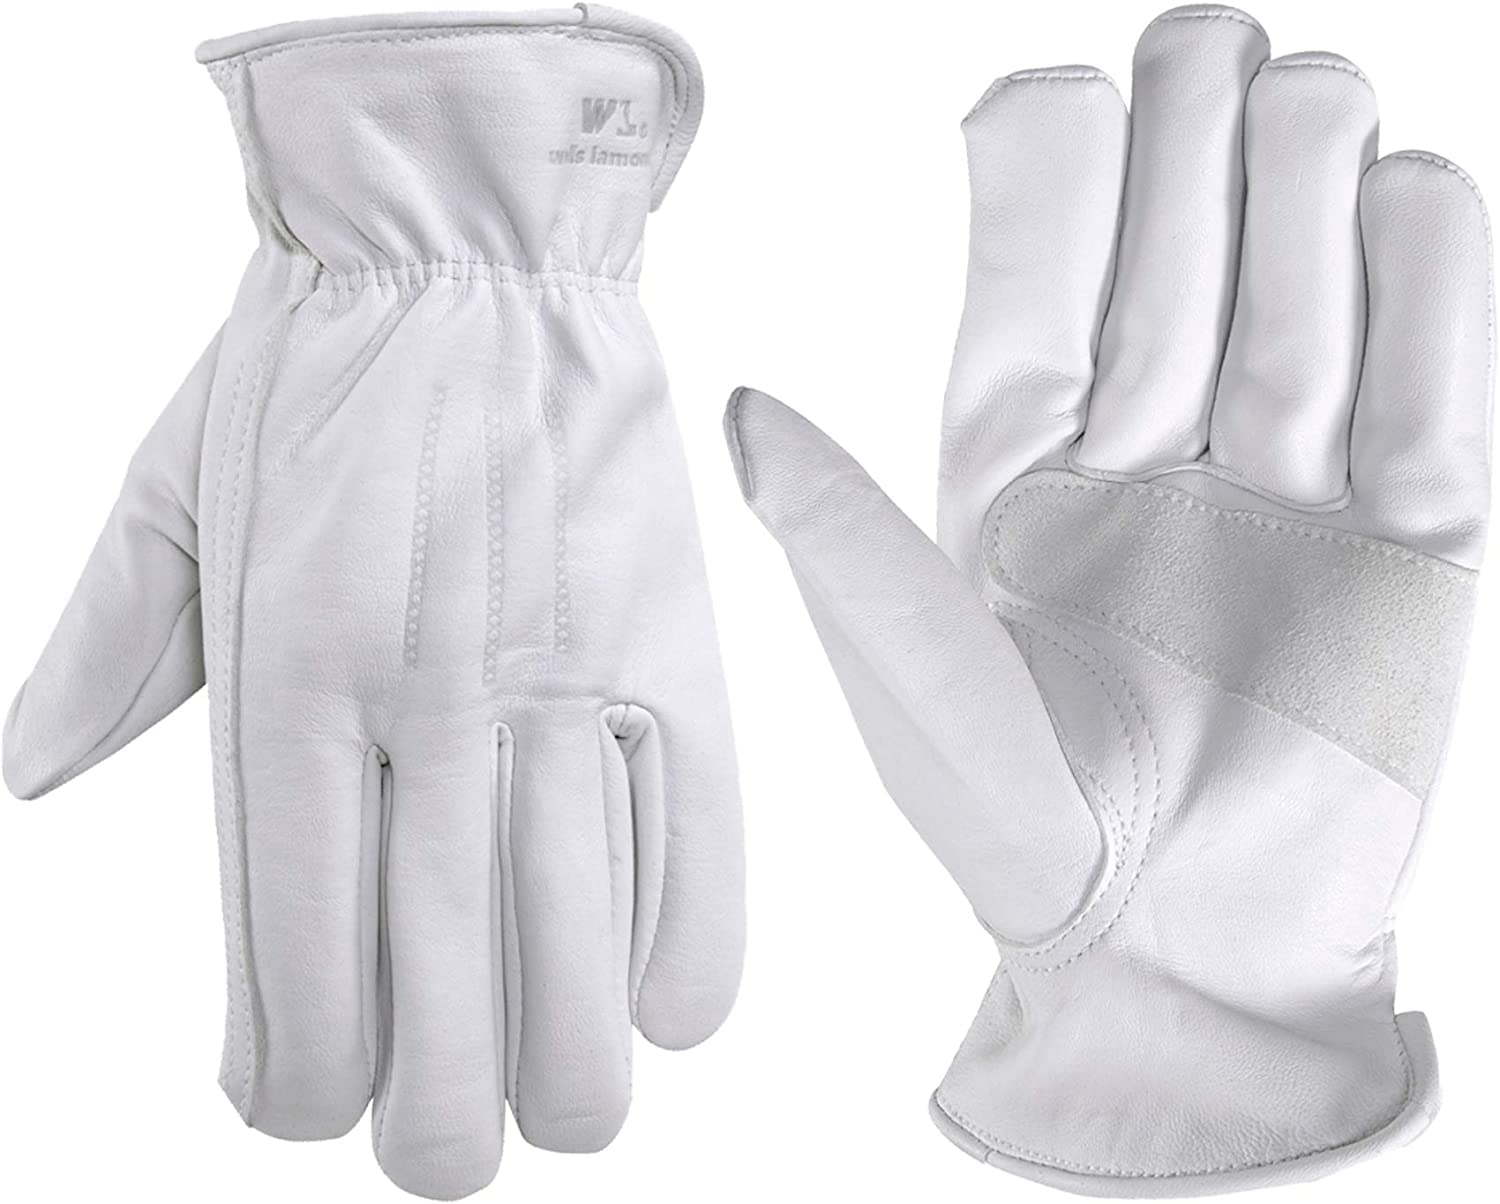 Men's Genuine Leather Work Gloves with Reinforced Palm, Large (Wells Lamont 1720), Grey